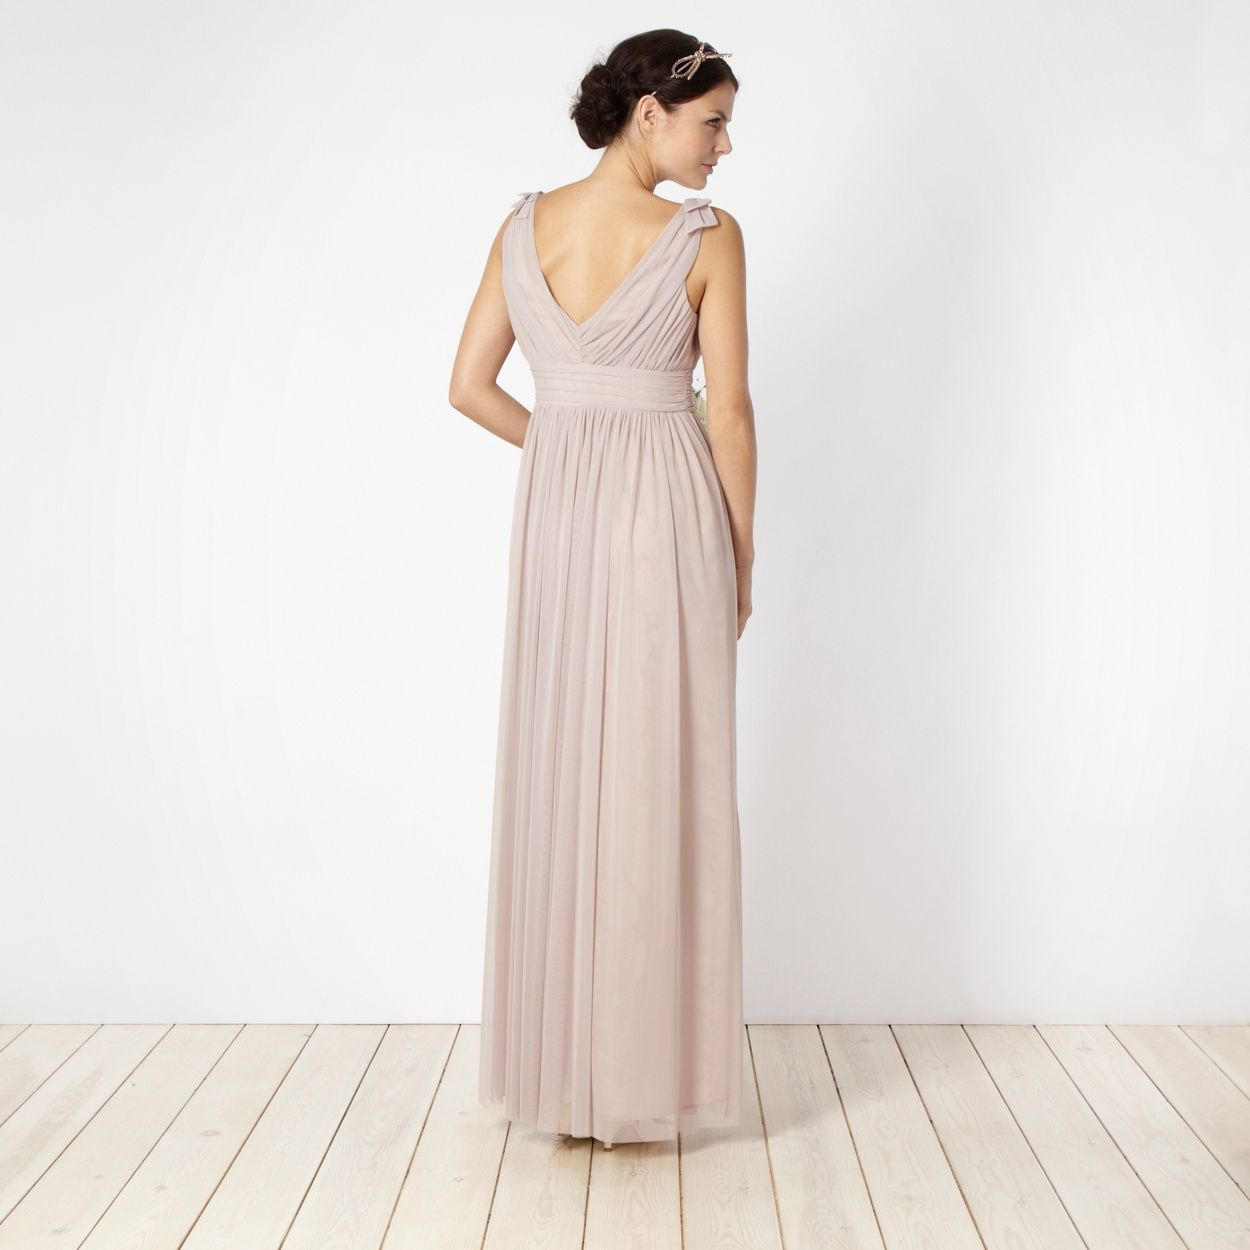 Debut rose ruched bust maxi dress at debenhams back barn debut rose ruched bust maxi dress at debenhams back ombrellifo Image collections